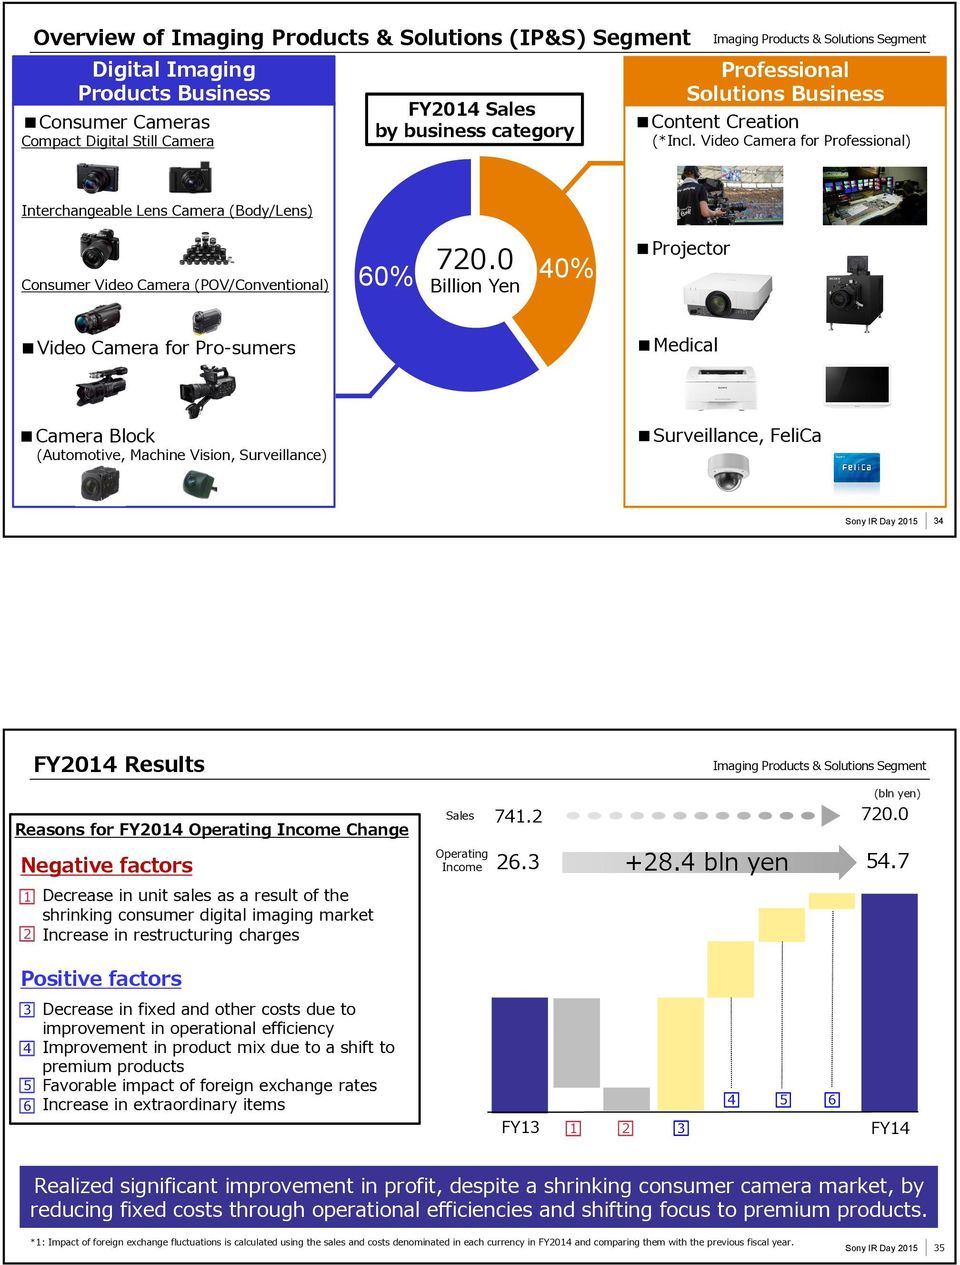 0 Billion Yen 40% Projector Video Camera for Pro-sumers Medical Camera Block (Automotive, Machine Vision, Surveillance) Surveillance, FeliCa 34 FY2014 Results Reasons for FY2014 Operating Income